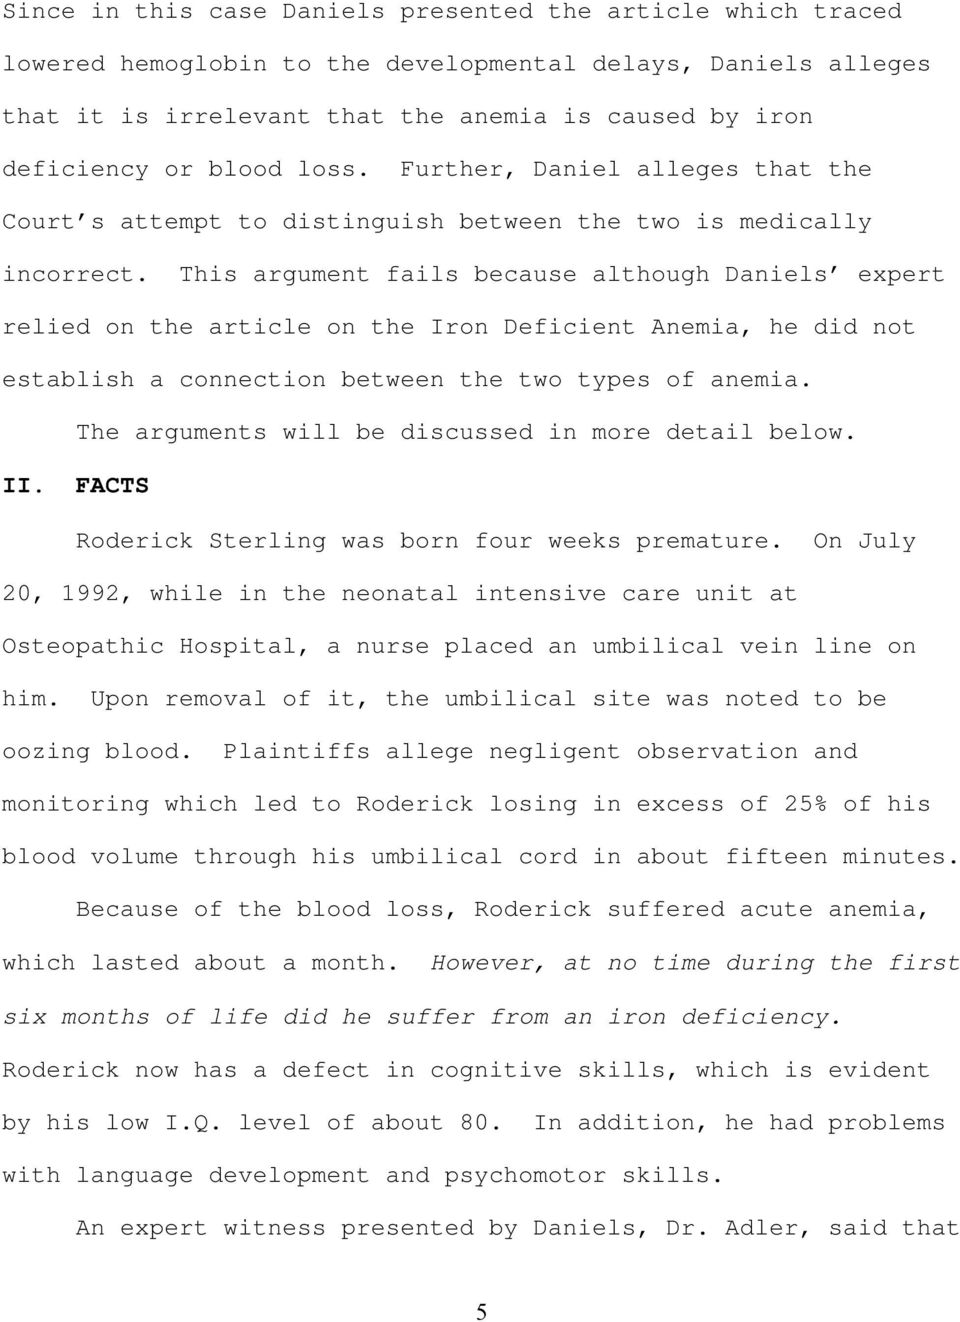 This argument fails because although Daniels expert relied on the article on the Iron Deficient Anemia, he did not establish a connection between the two types of anemia.